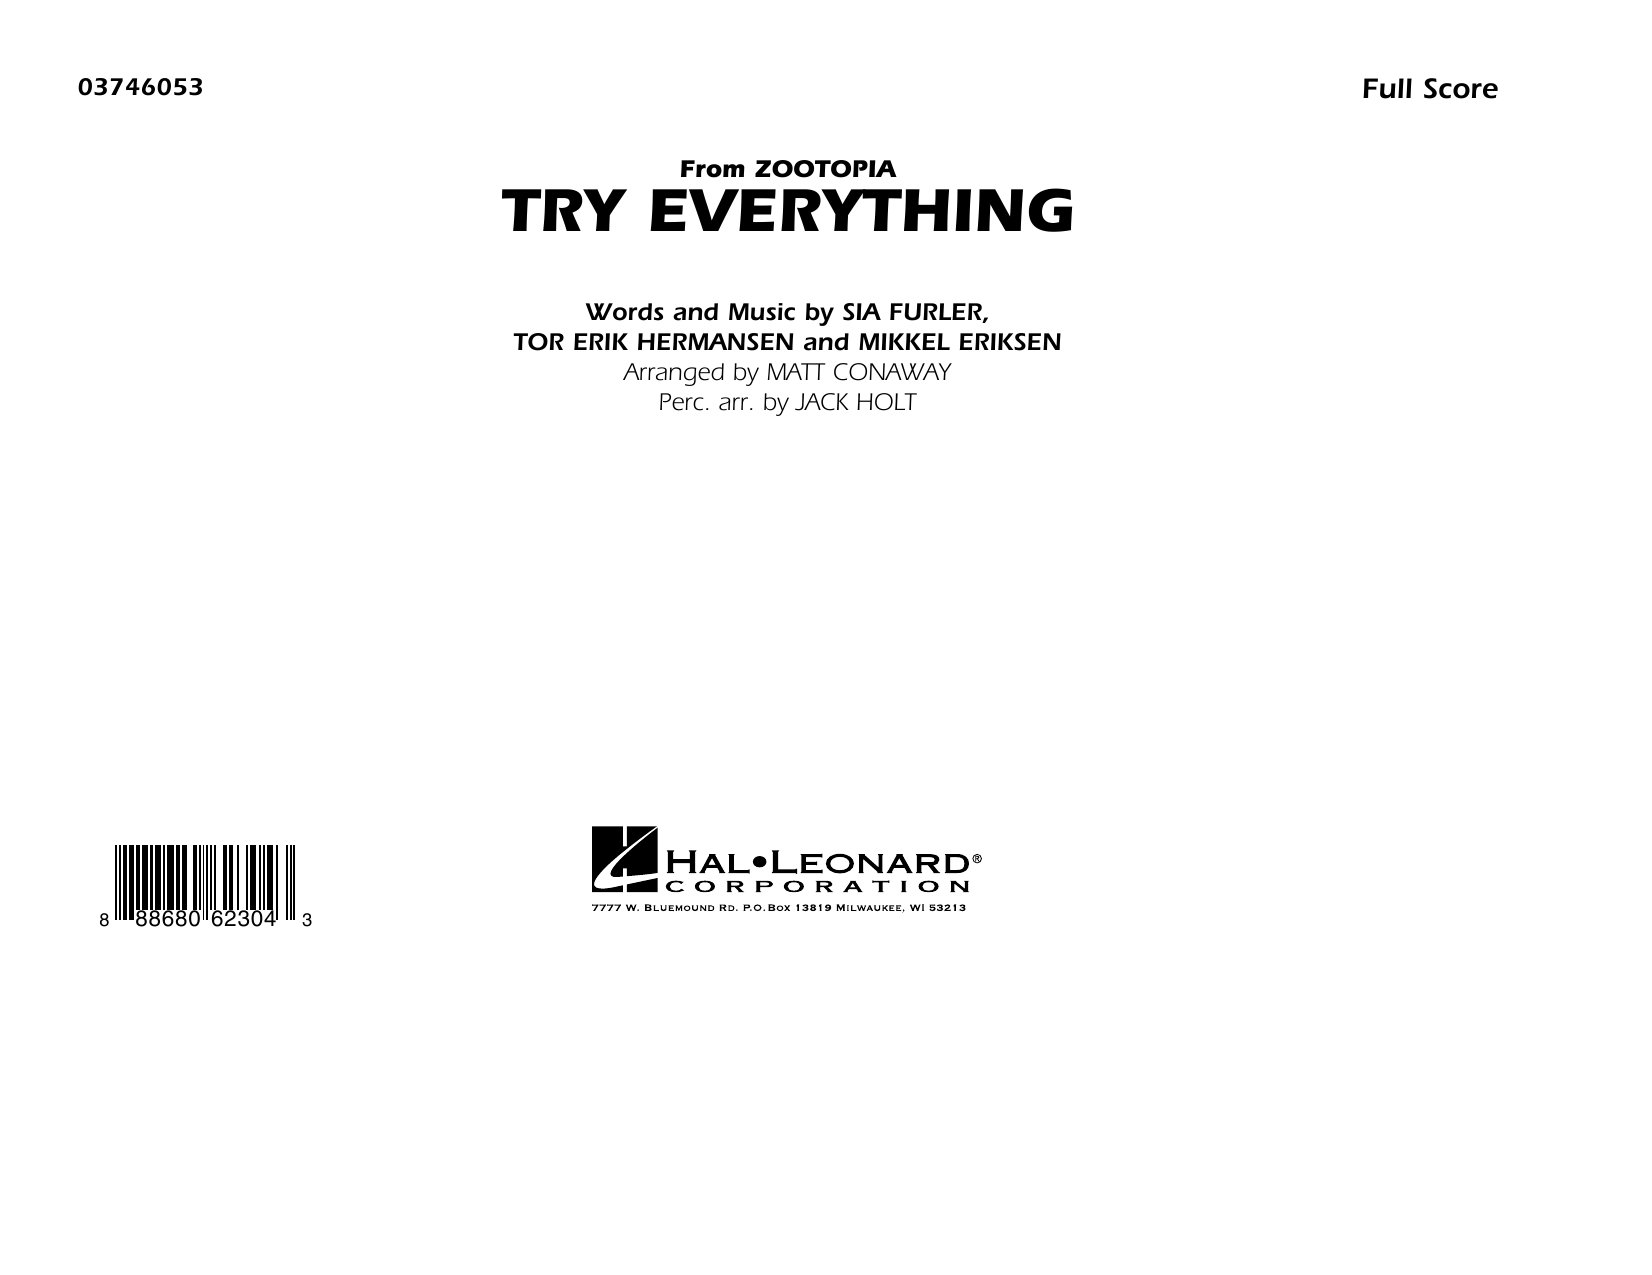 Try Everything (from Zootopia) (COMPLETE) sheet music for marching band by Matt Conaway, Mikkel Eriksen, Shakira, Sia Furler and Tor Erik Hermansen. Score Image Preview.